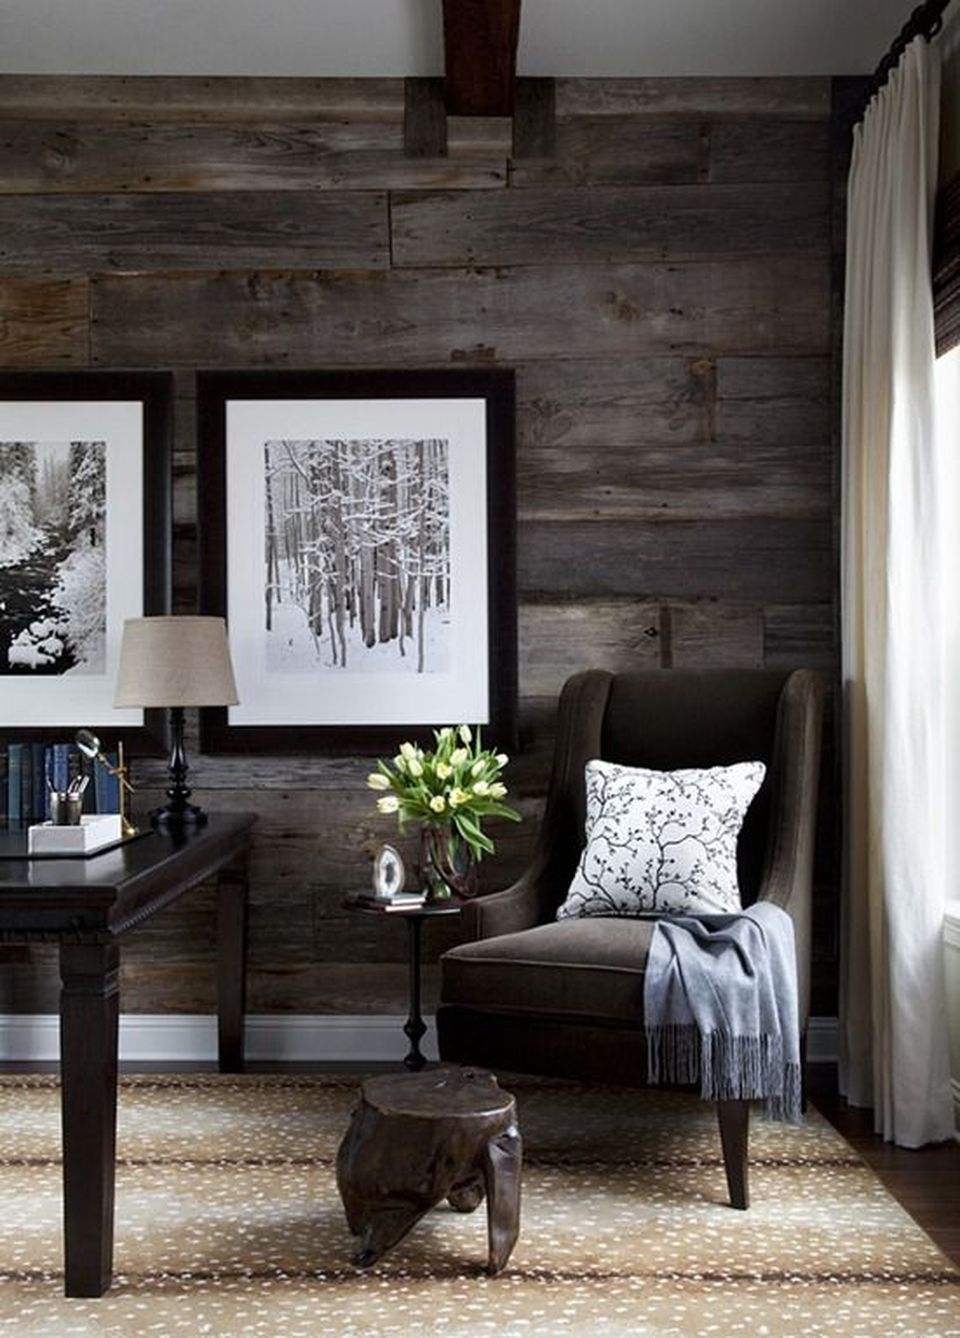 Artistic Pallet, Peel and Stick Wood Wall Design and Decorations 6